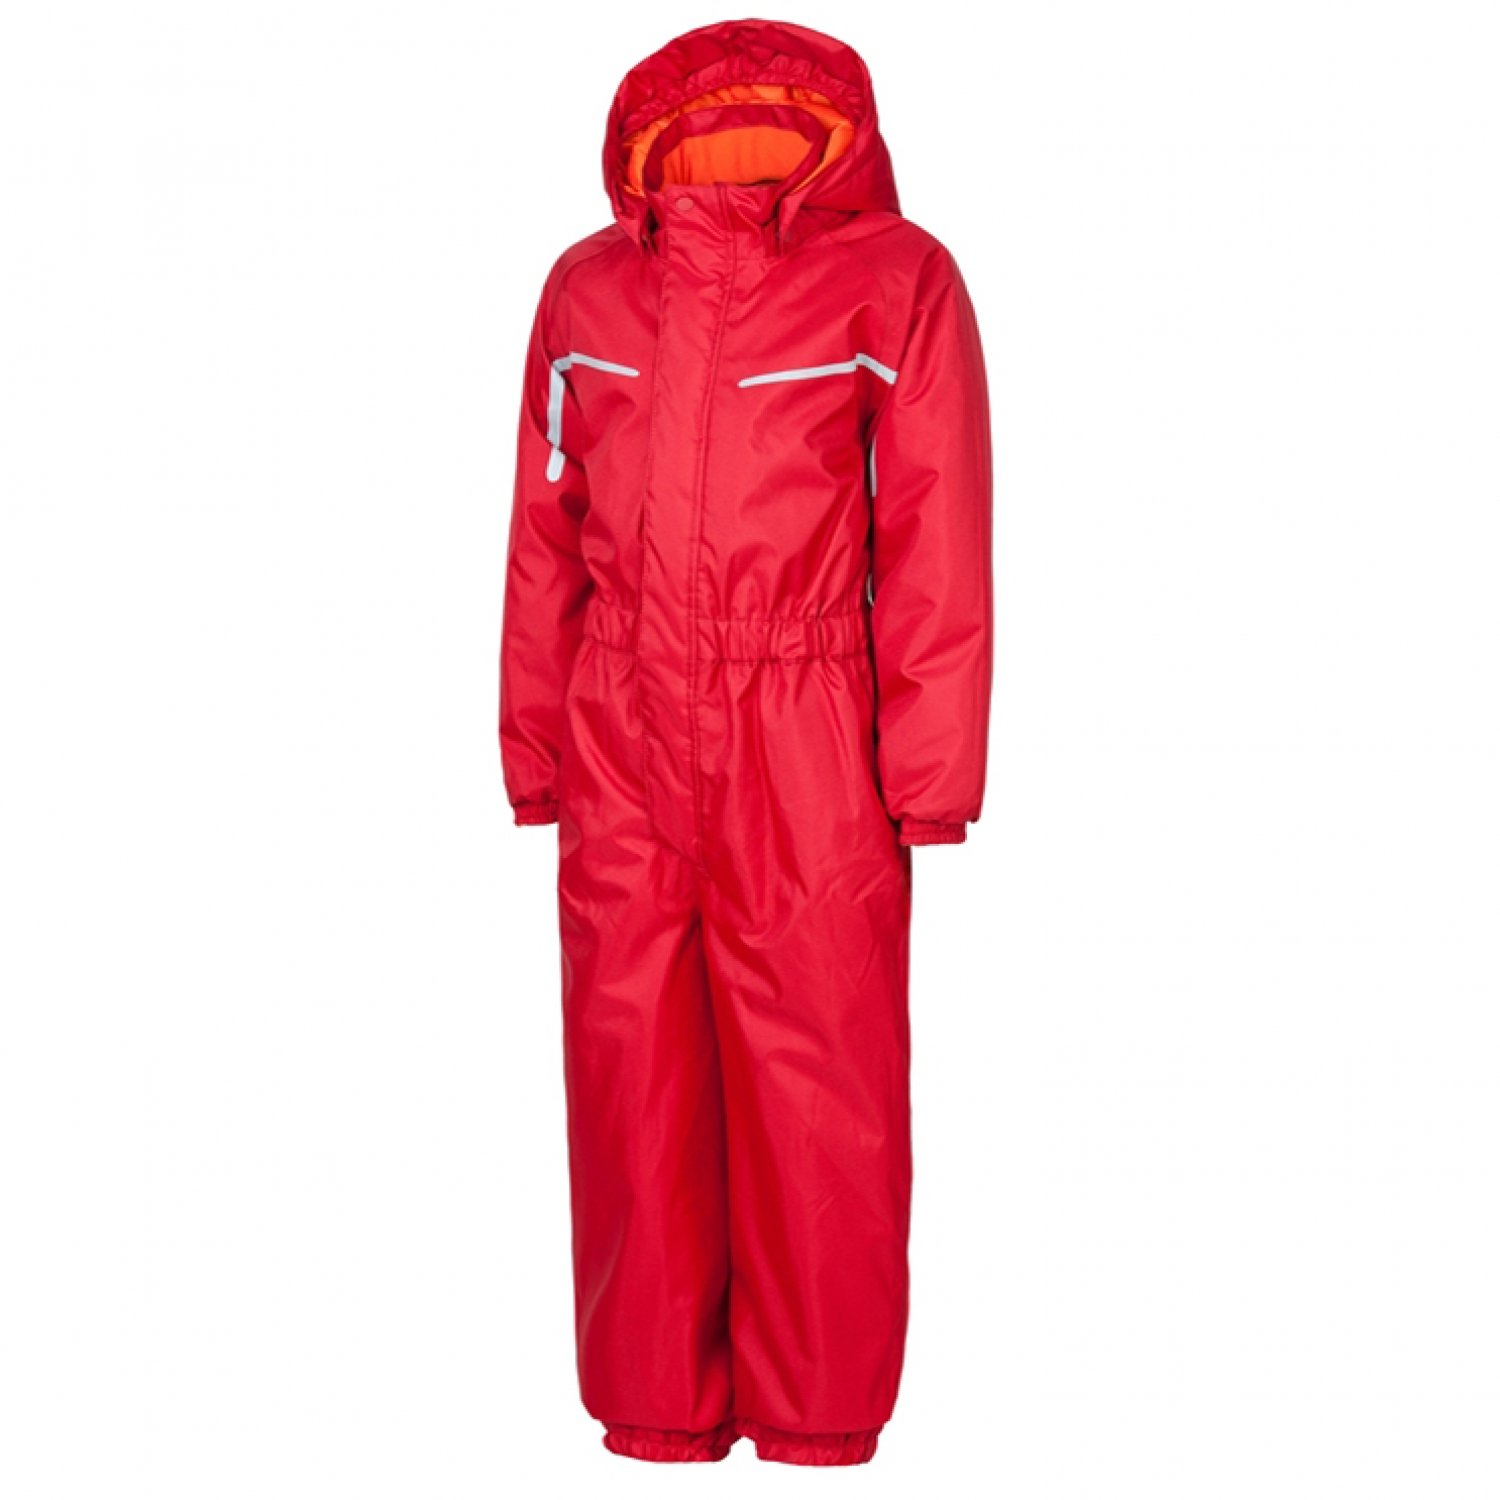 Kinder Overall Tagolo Coverall